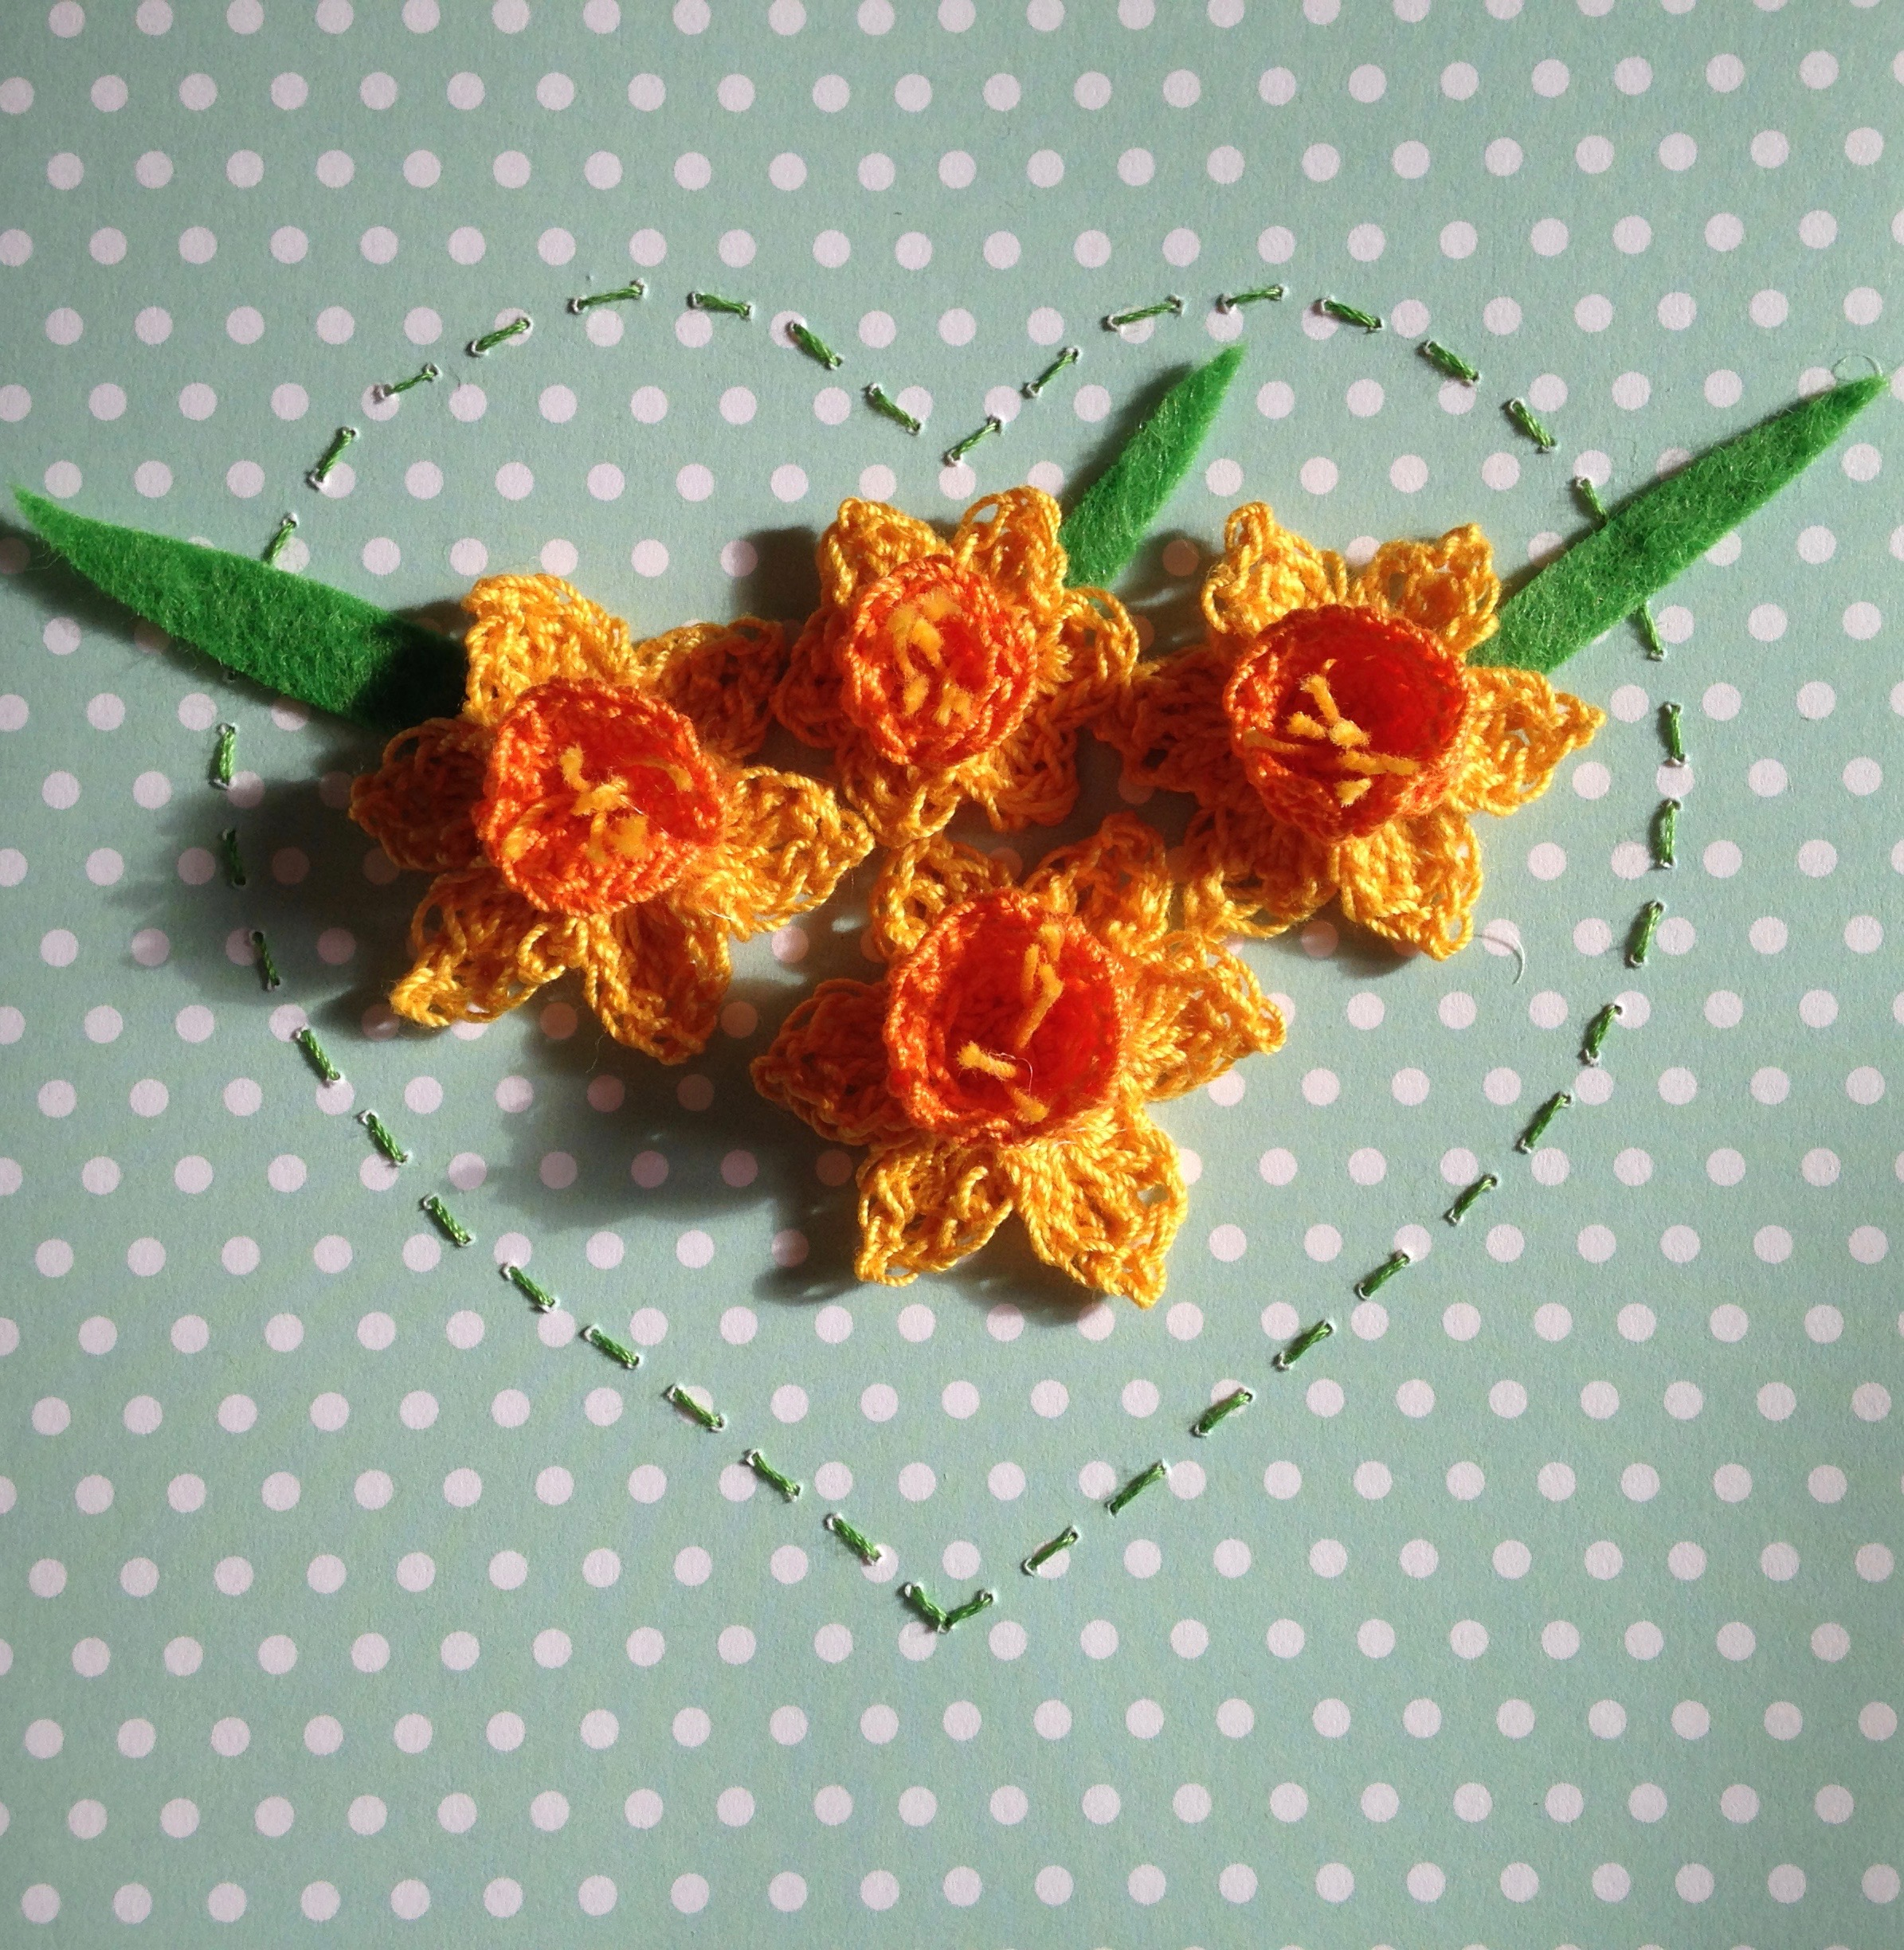 A crocheted Daffodil card. Crocheted Daffodils in yellow and orange surrounded by a hand stitched heart. With a green and white polka dot card background.